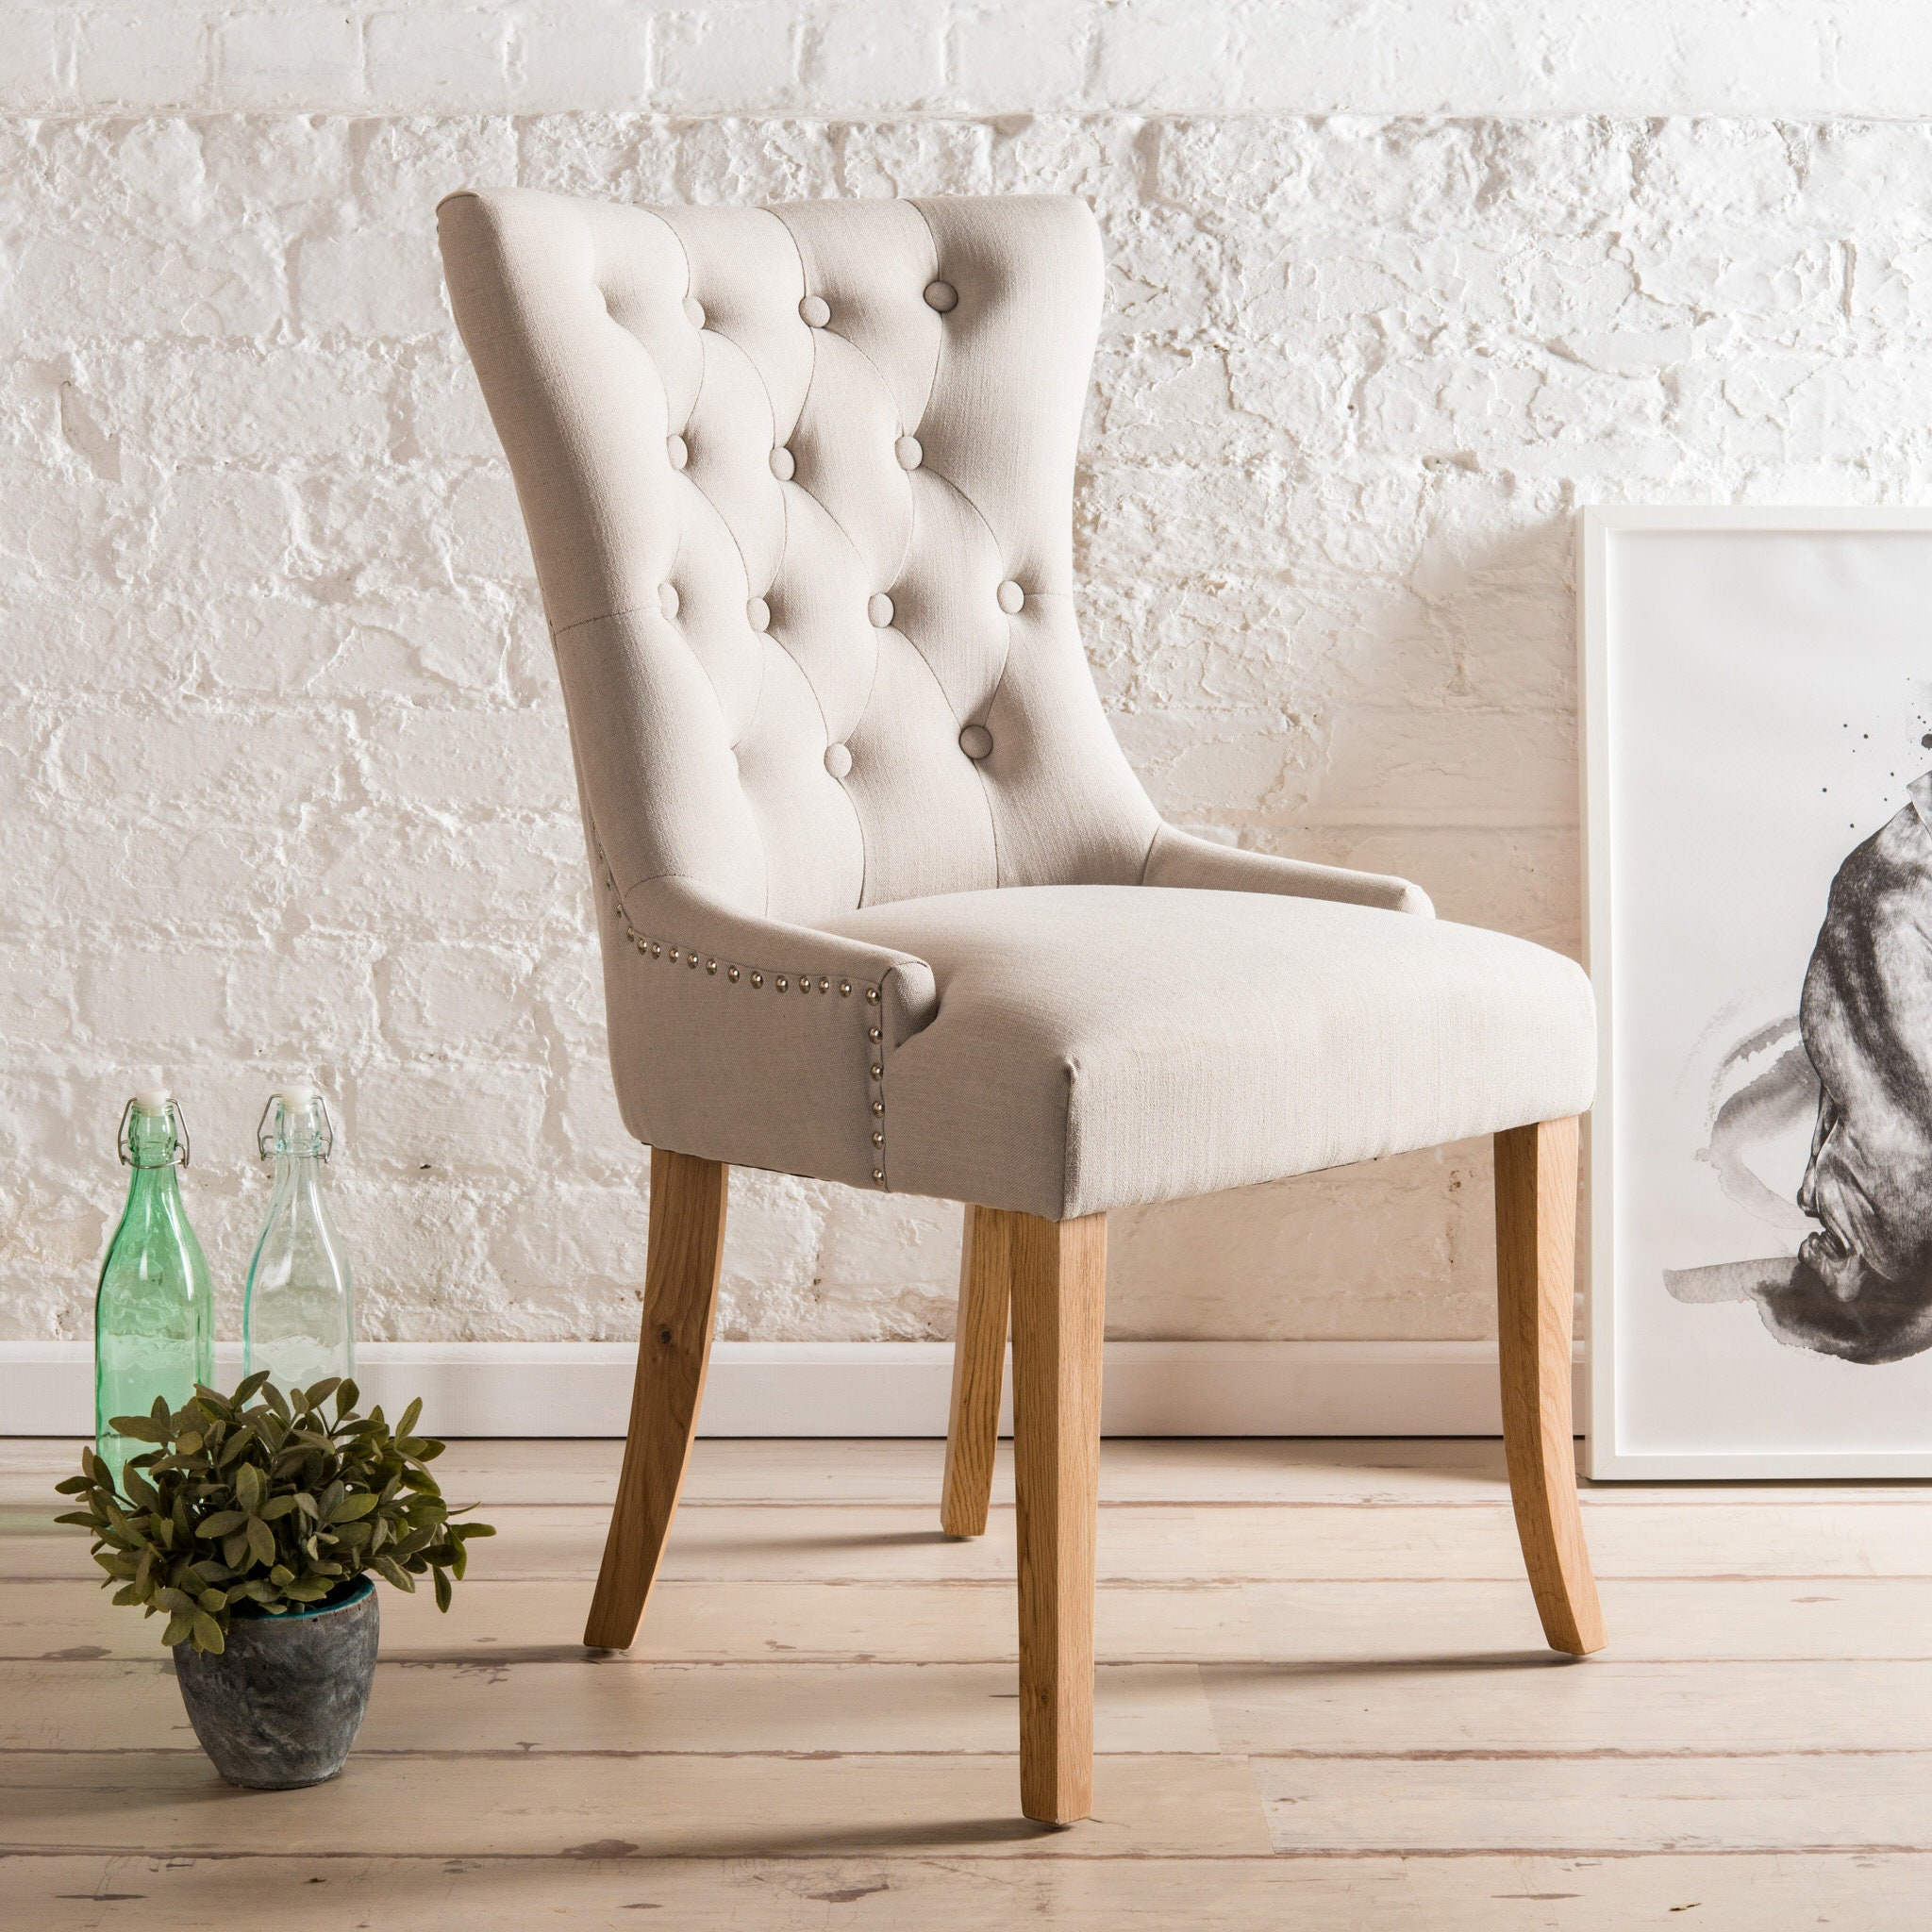 Alma wing back Upholstered Dining Chair with button back and chrome knocker. Light grey or dark grey